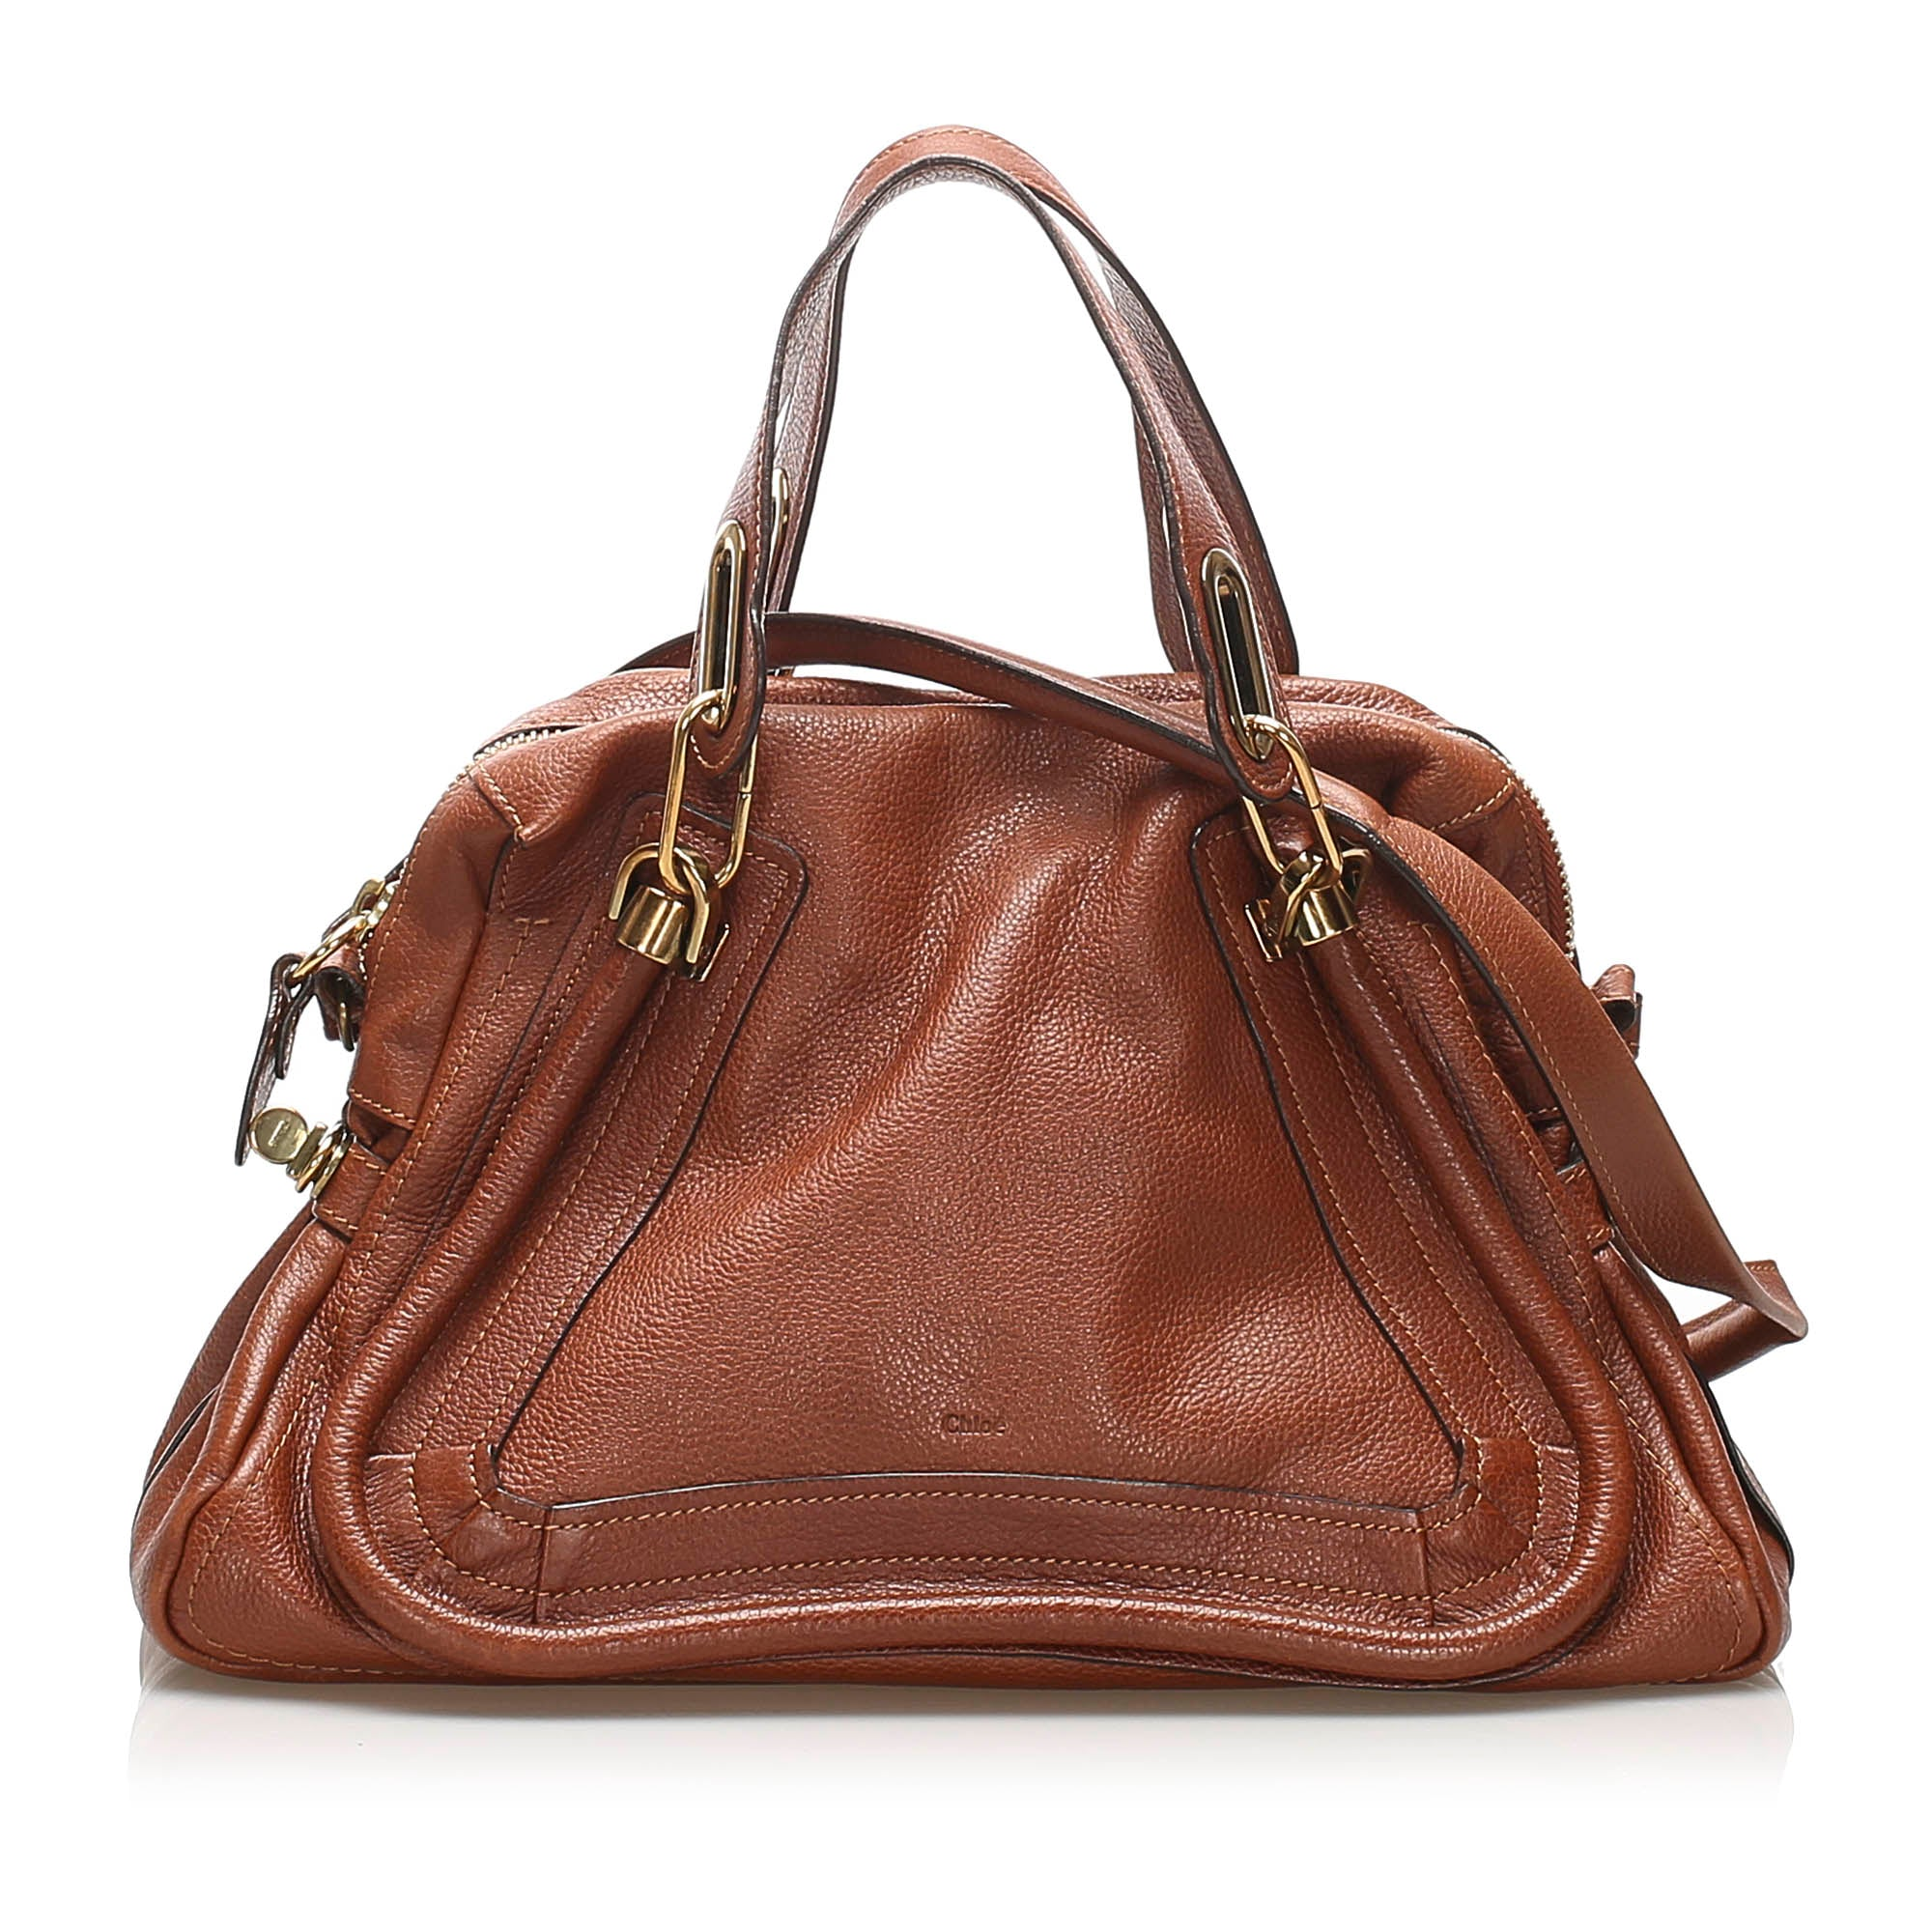 Chloe Brown Paraty Leather Satchel